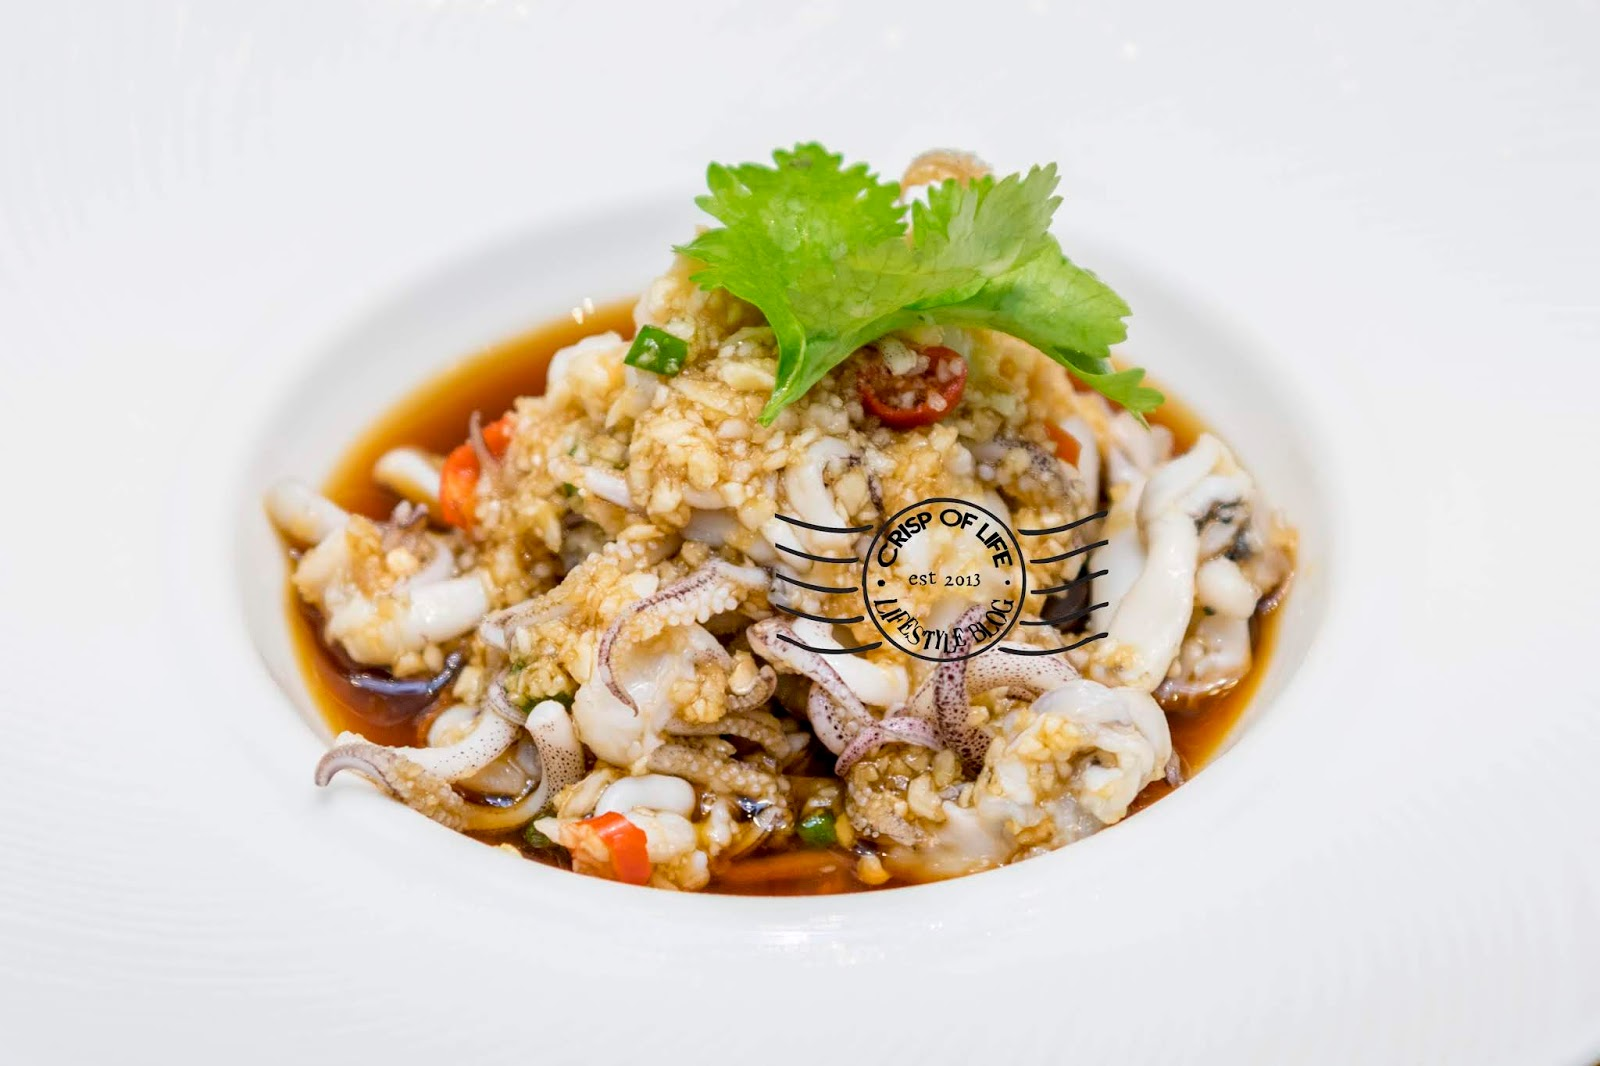 PUTIEN Malaysia Limited Edition Eel Festival - Fresh Eel Air-Flown from Putian Daily!